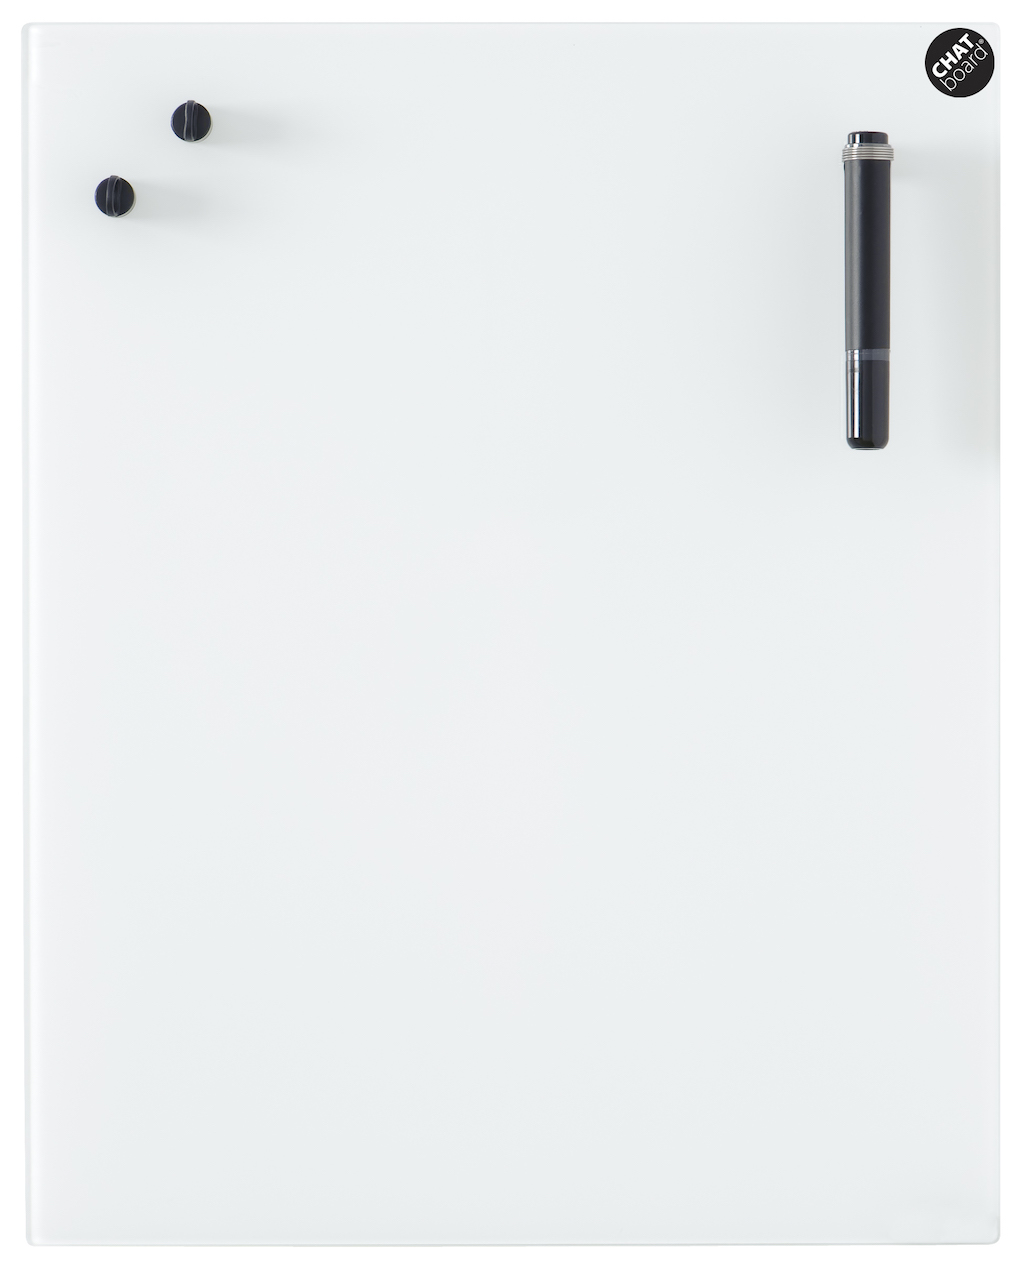 CHAT BOARD® – Pure White